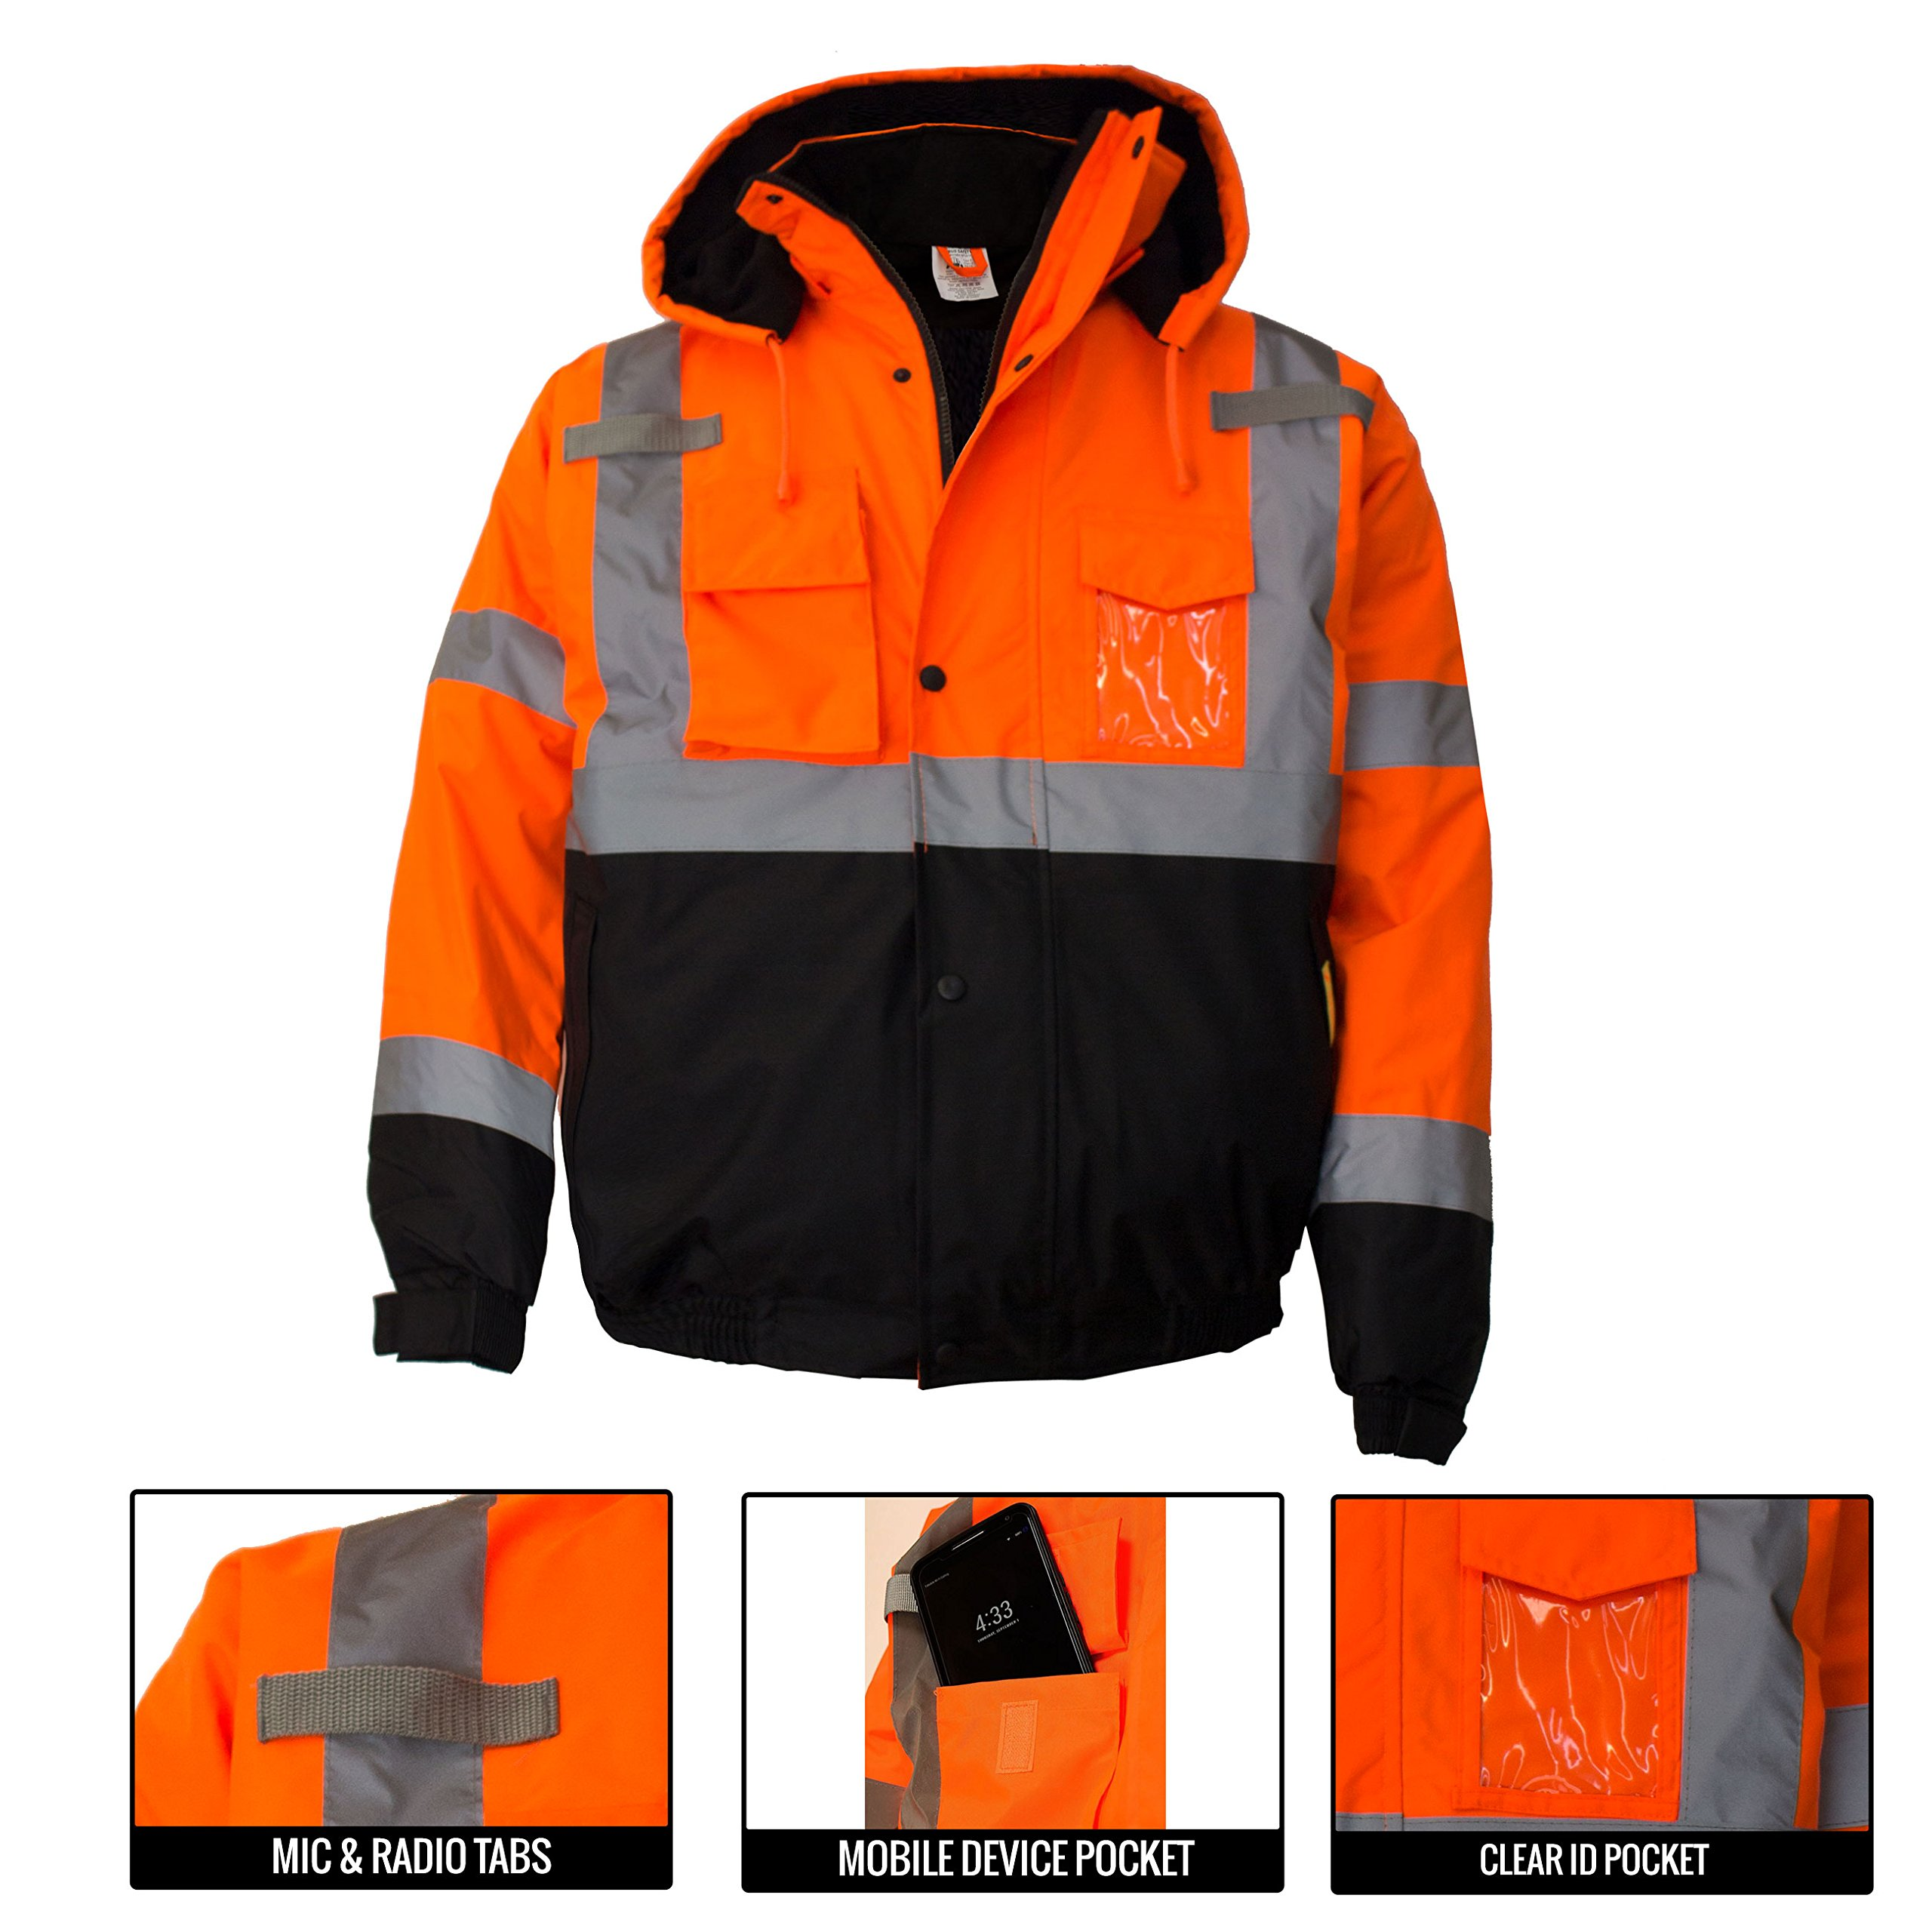 New York Hi-Viz Workwear WJ9011-L Men's ANSI Class 3 High Visibility Bomber Safety Jacket, Waterproof (Large, Orange) by New York Hi-Viz Workwear (Image #6)